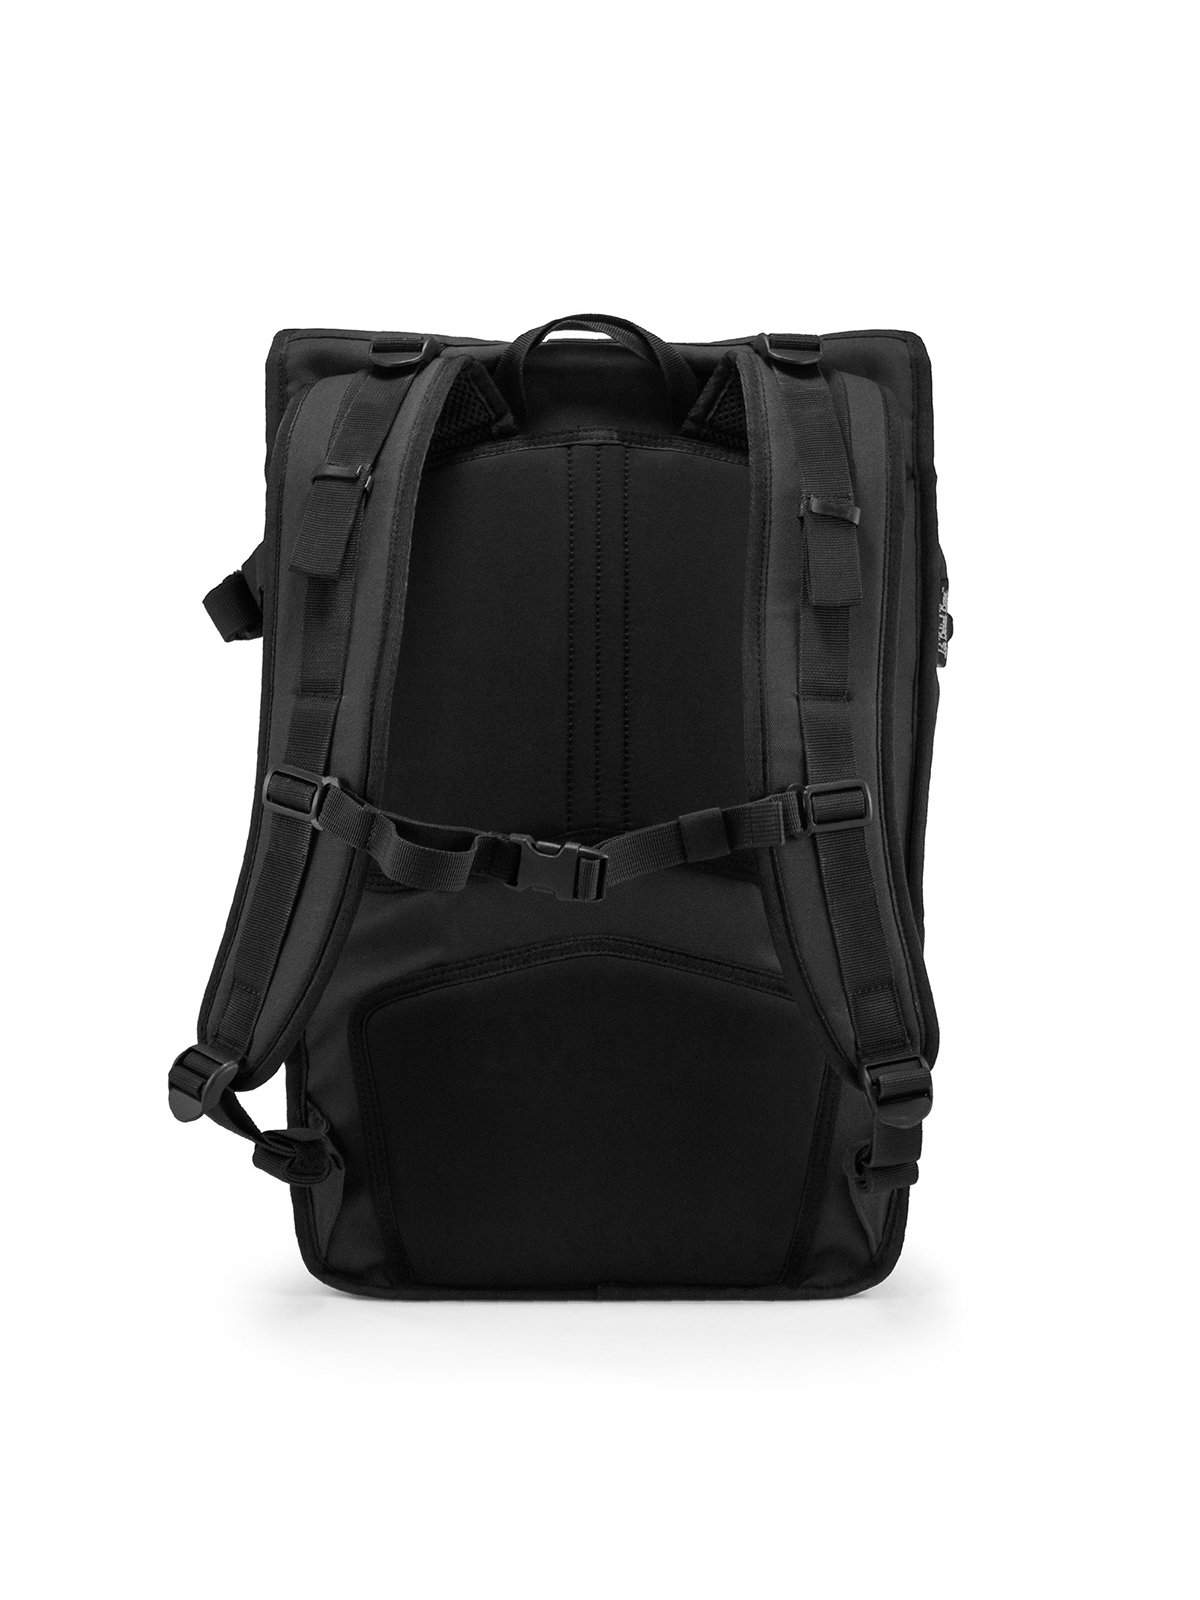 600d7d9e432d Life Behind Bars The Breakaway 27L Backpack Black - MORE by Morello -  Indonesia